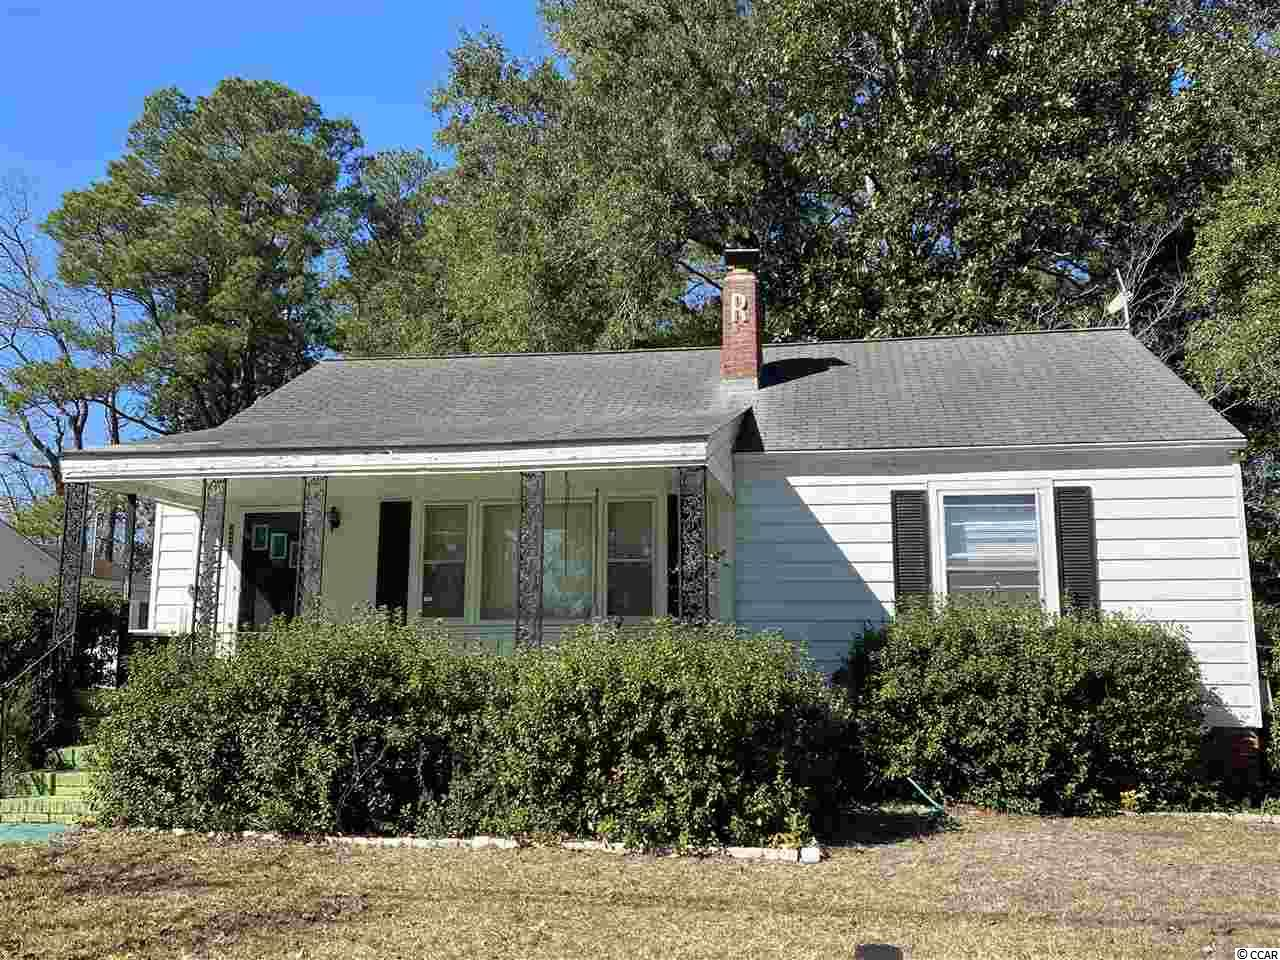 Great opportunity to own this home in Maryville which is near Winyah Bay and local boat landings and close to Historic Downtown Georgetown with its award winning restaurants and shopping.  This home features hardwood floors in the main living area, fireplace and pull down stairs with extra storage in the attic.  It includes a large 24'x30' detached Garage with a shop inside for all your projects.  The home has a lot of potential bonus space with an attached enclosed back porch.  Needs TLC to make this the perfect home for a family or investment rental.